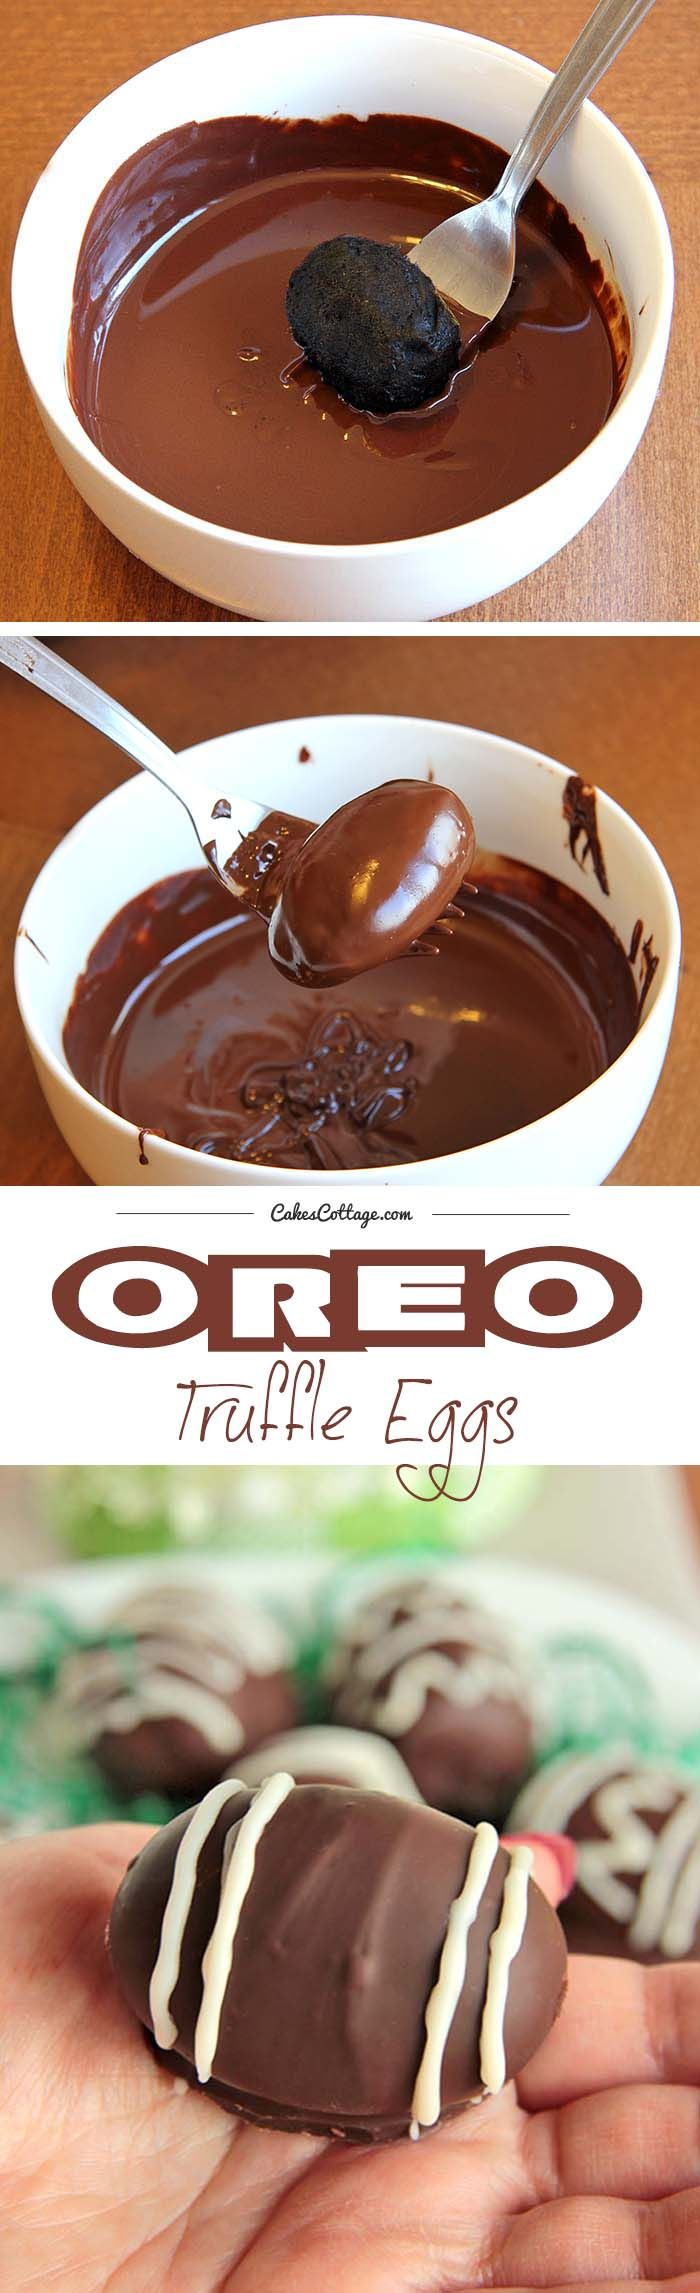 Easter is on the way and so are the Oreo Truffle Eggs! And if you have been searching for a quick and easy, totally adorable, Easter gift, look no further. | cakescottage.com | #easter #oreo #eggs